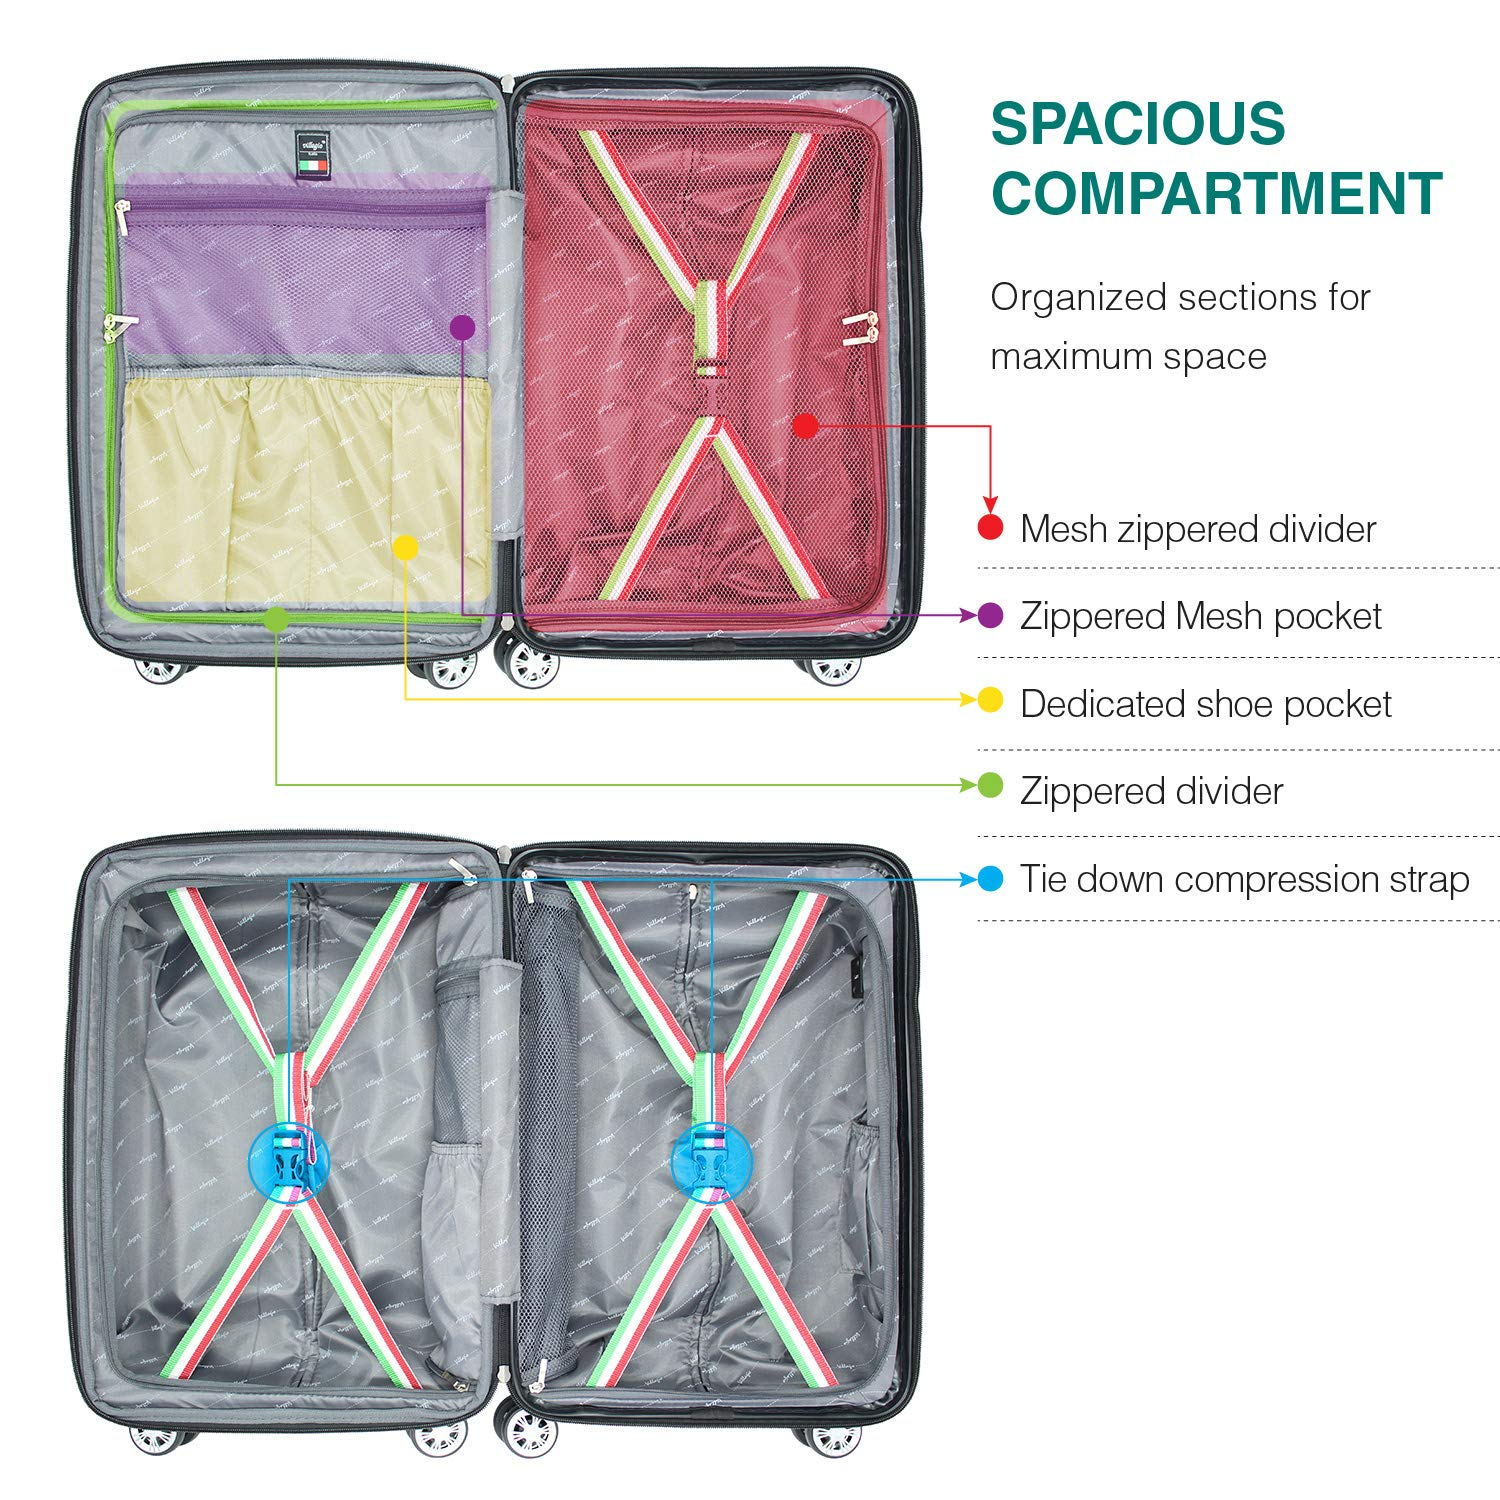 ... On USB port Polycarbonate 8 Wheel Spinner with Slash Proof Zipper TSA Lock and Expandable Zipper (22x14x9) (AQUA) / Maleta De Viaje De Polycorbonato Con ...